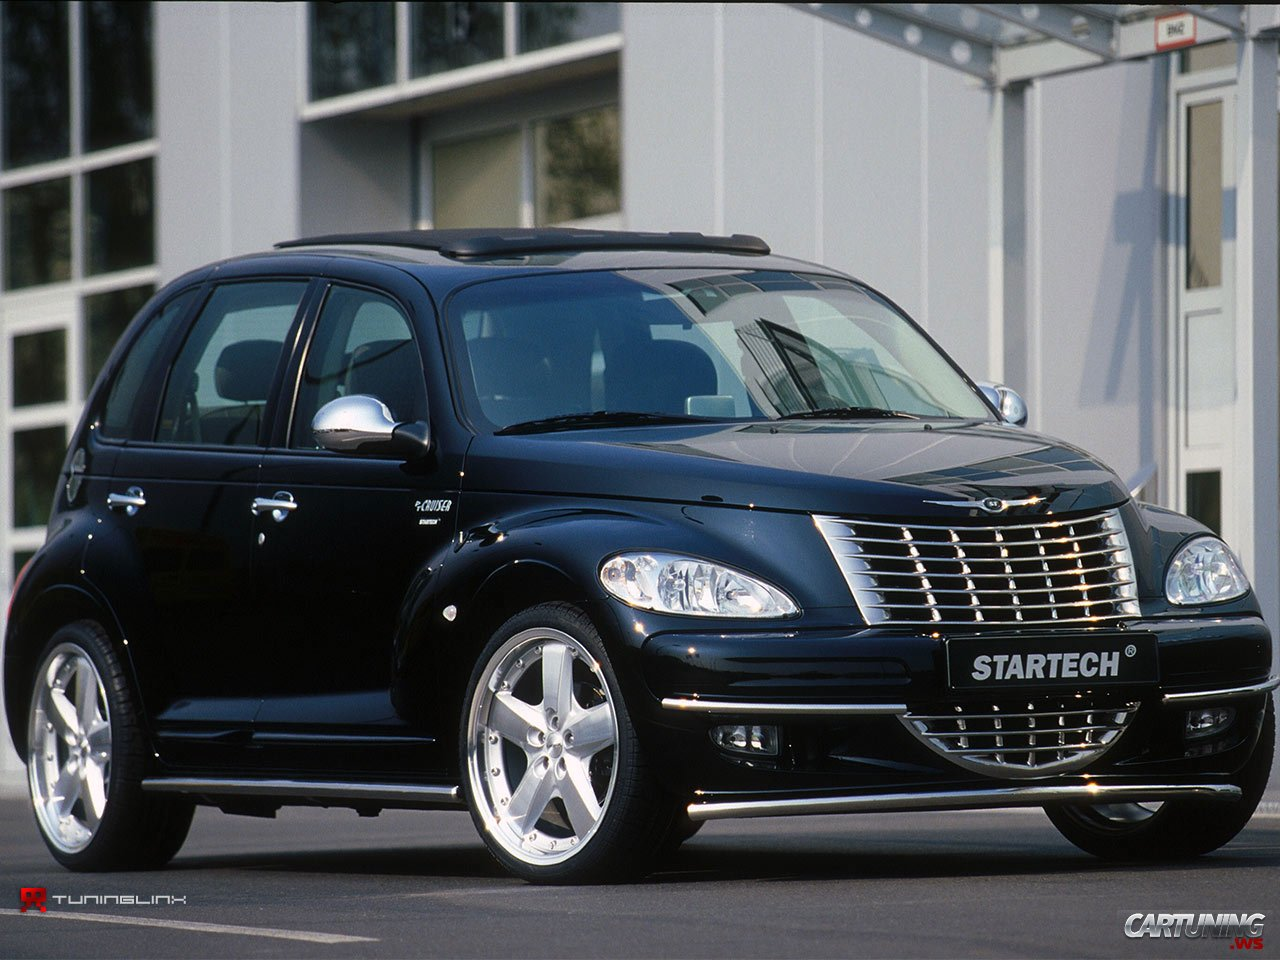 Tuning Chrysler Pt Cruiser 187 Cartuning Best Car Tuning